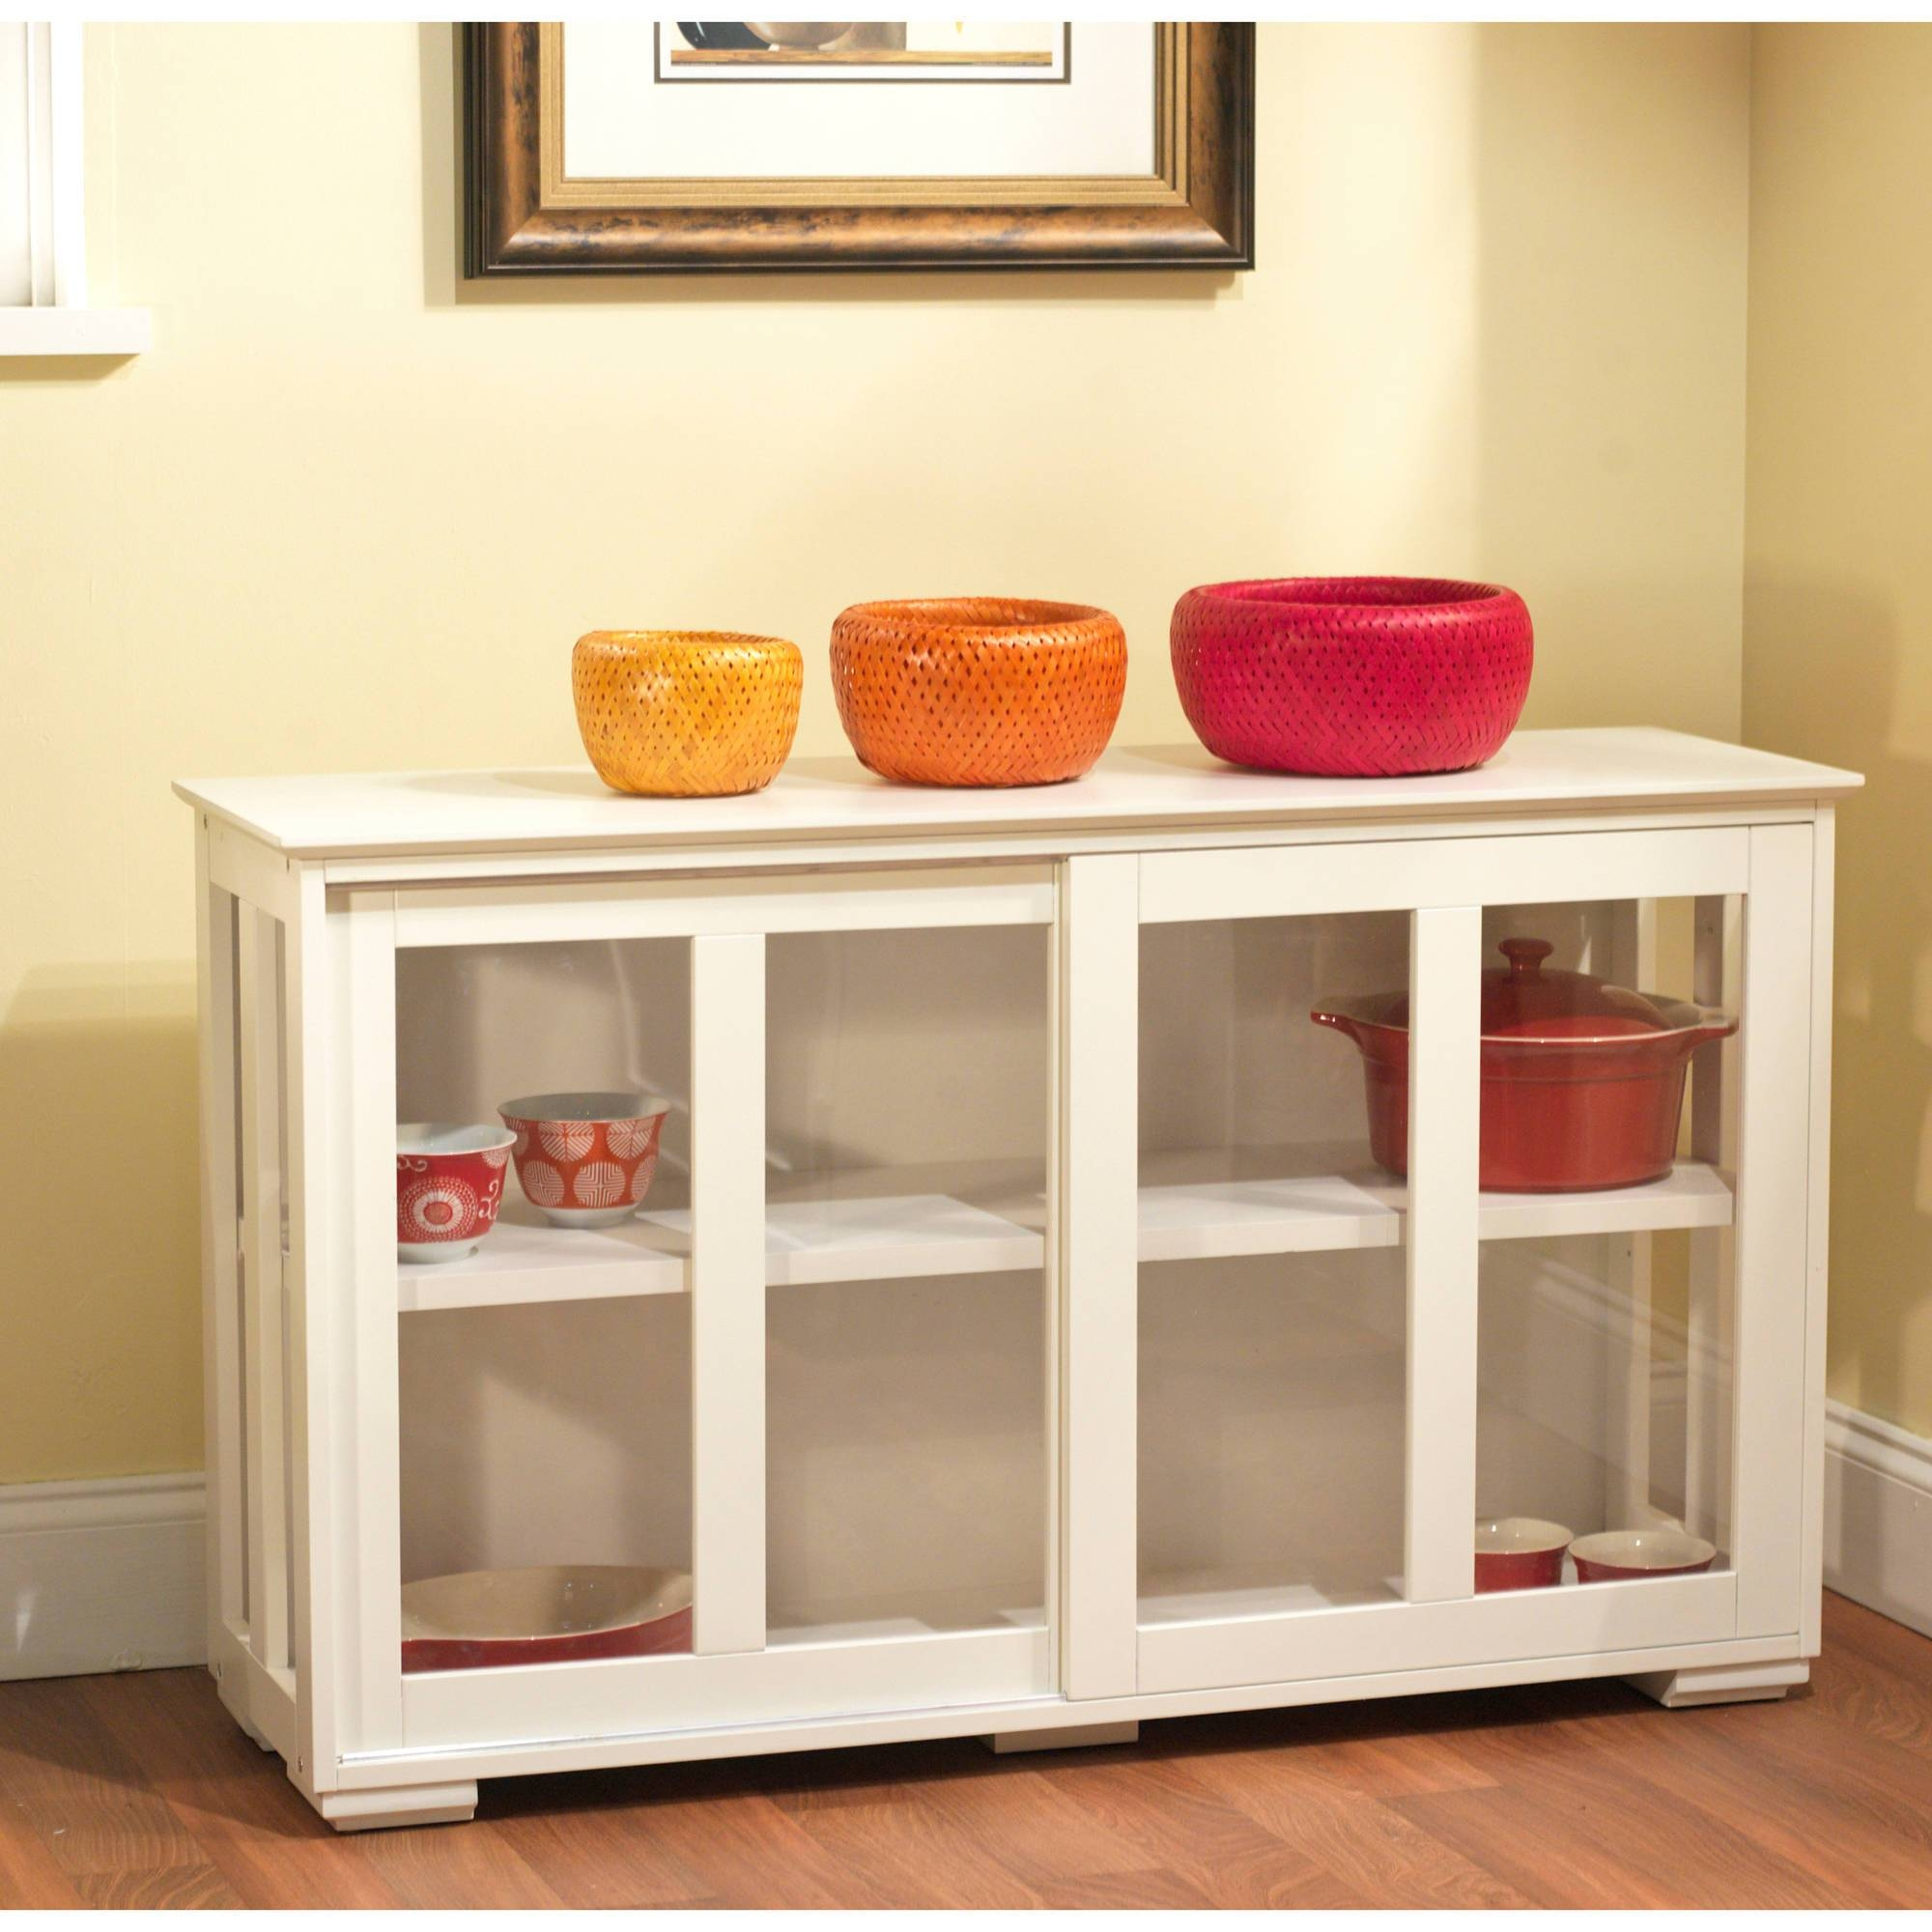 Kitchen : Black Sideboard Cabinet Narrow Buffet Table Kitchen For Black Sideboards With Glass Doors (View 6 of 15)